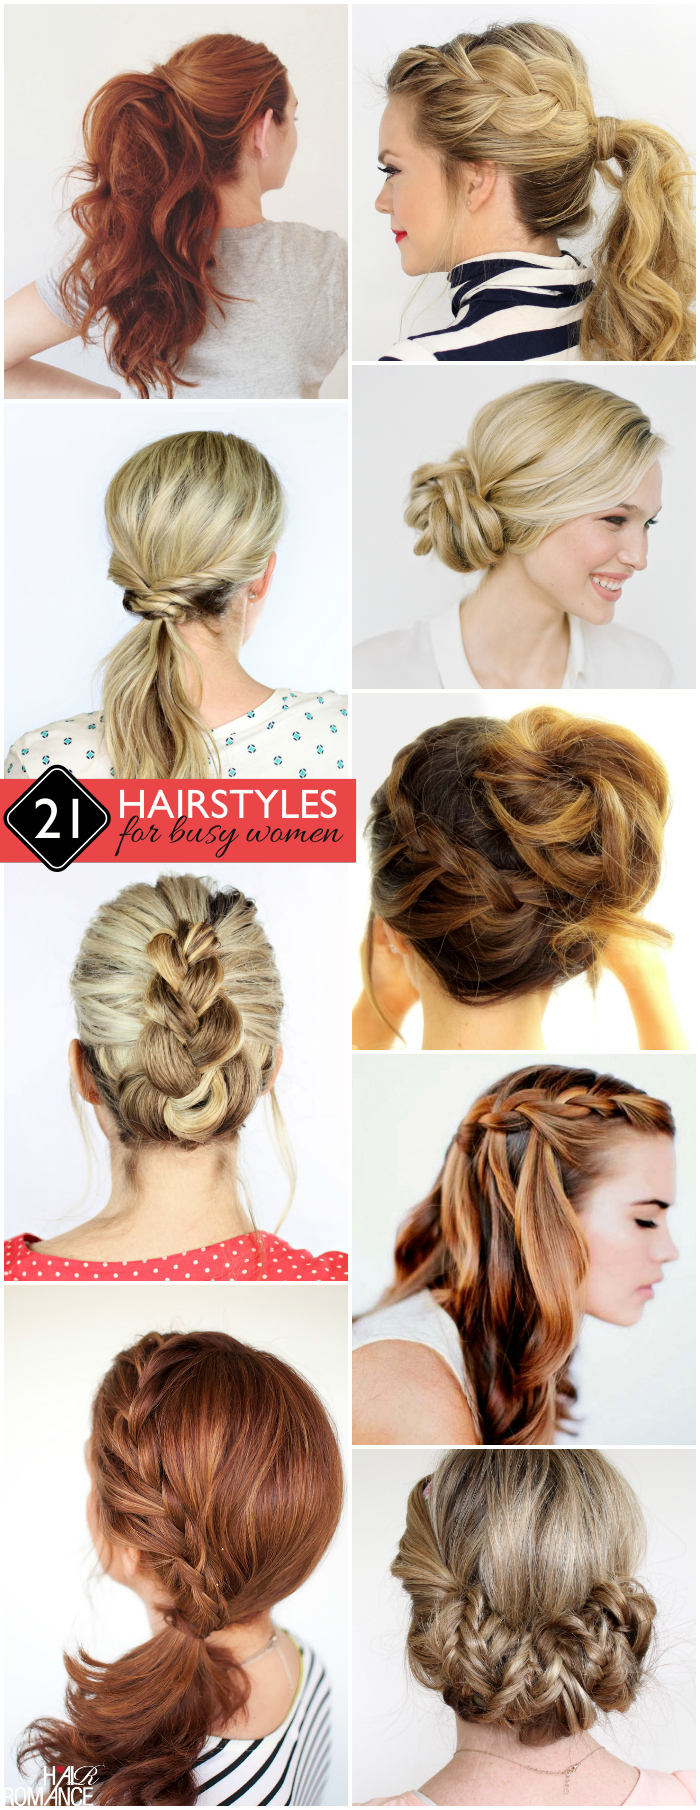 Easy Hairstyles For Busy Women